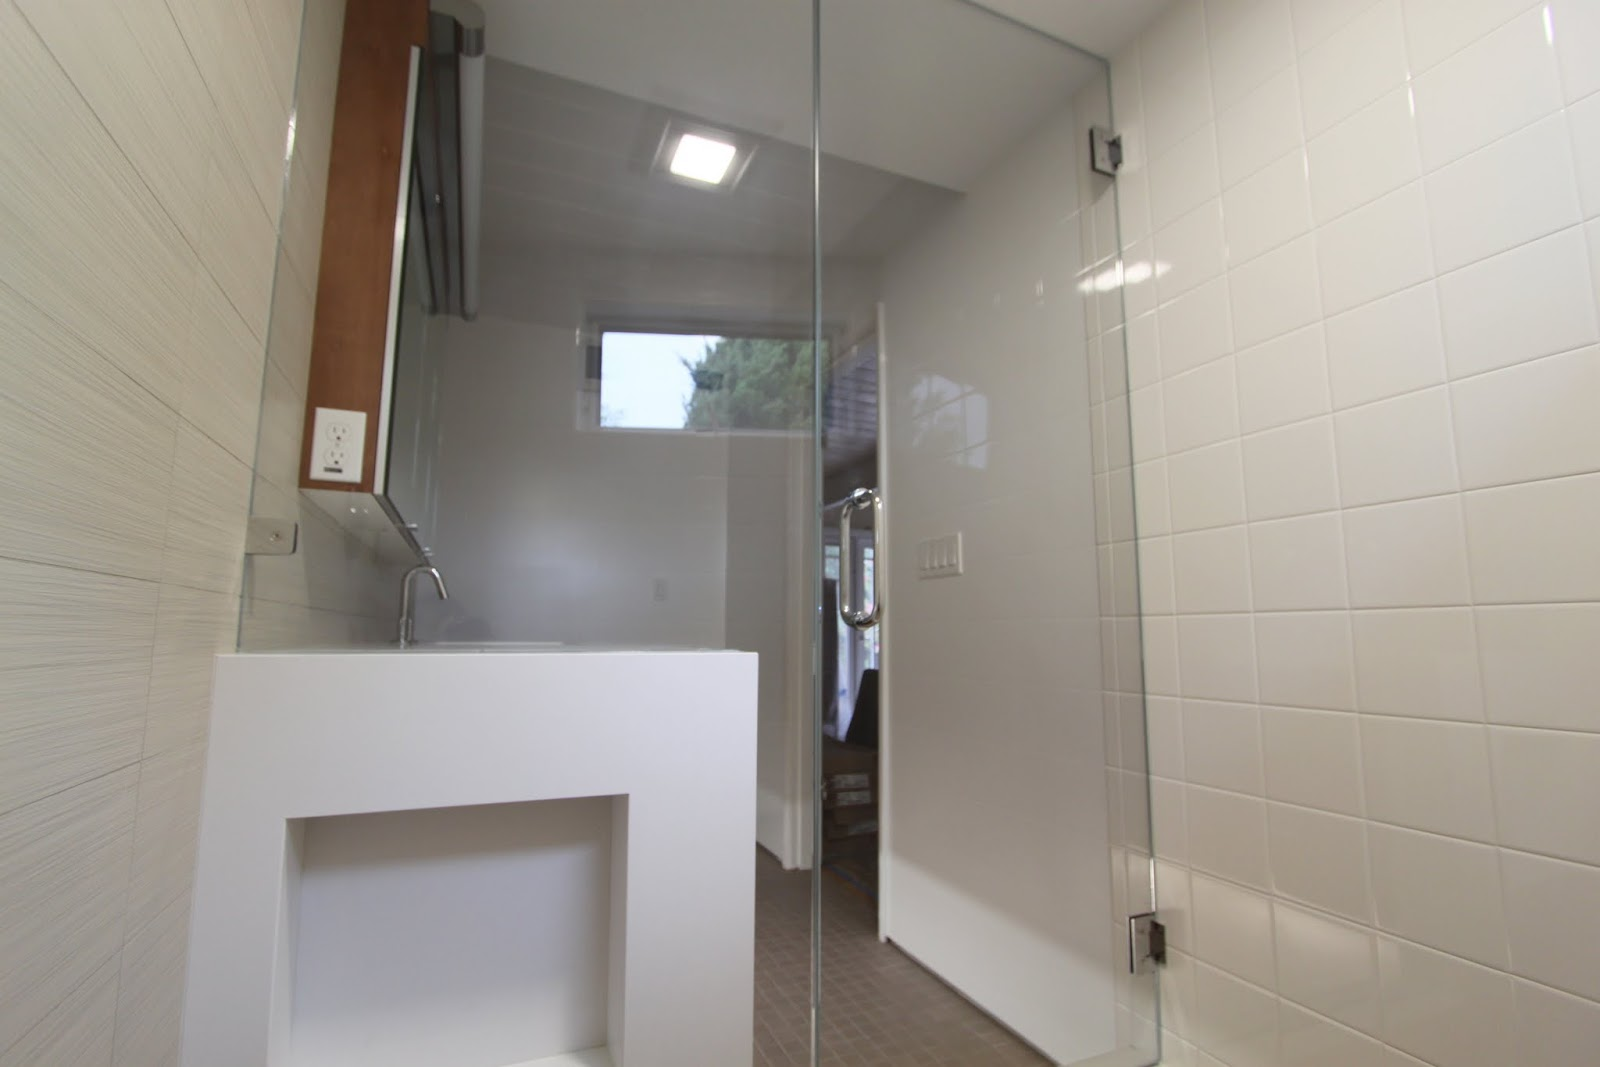 Shower Doors And Paint In Mid Century Modern Bathroom Remodel Mid